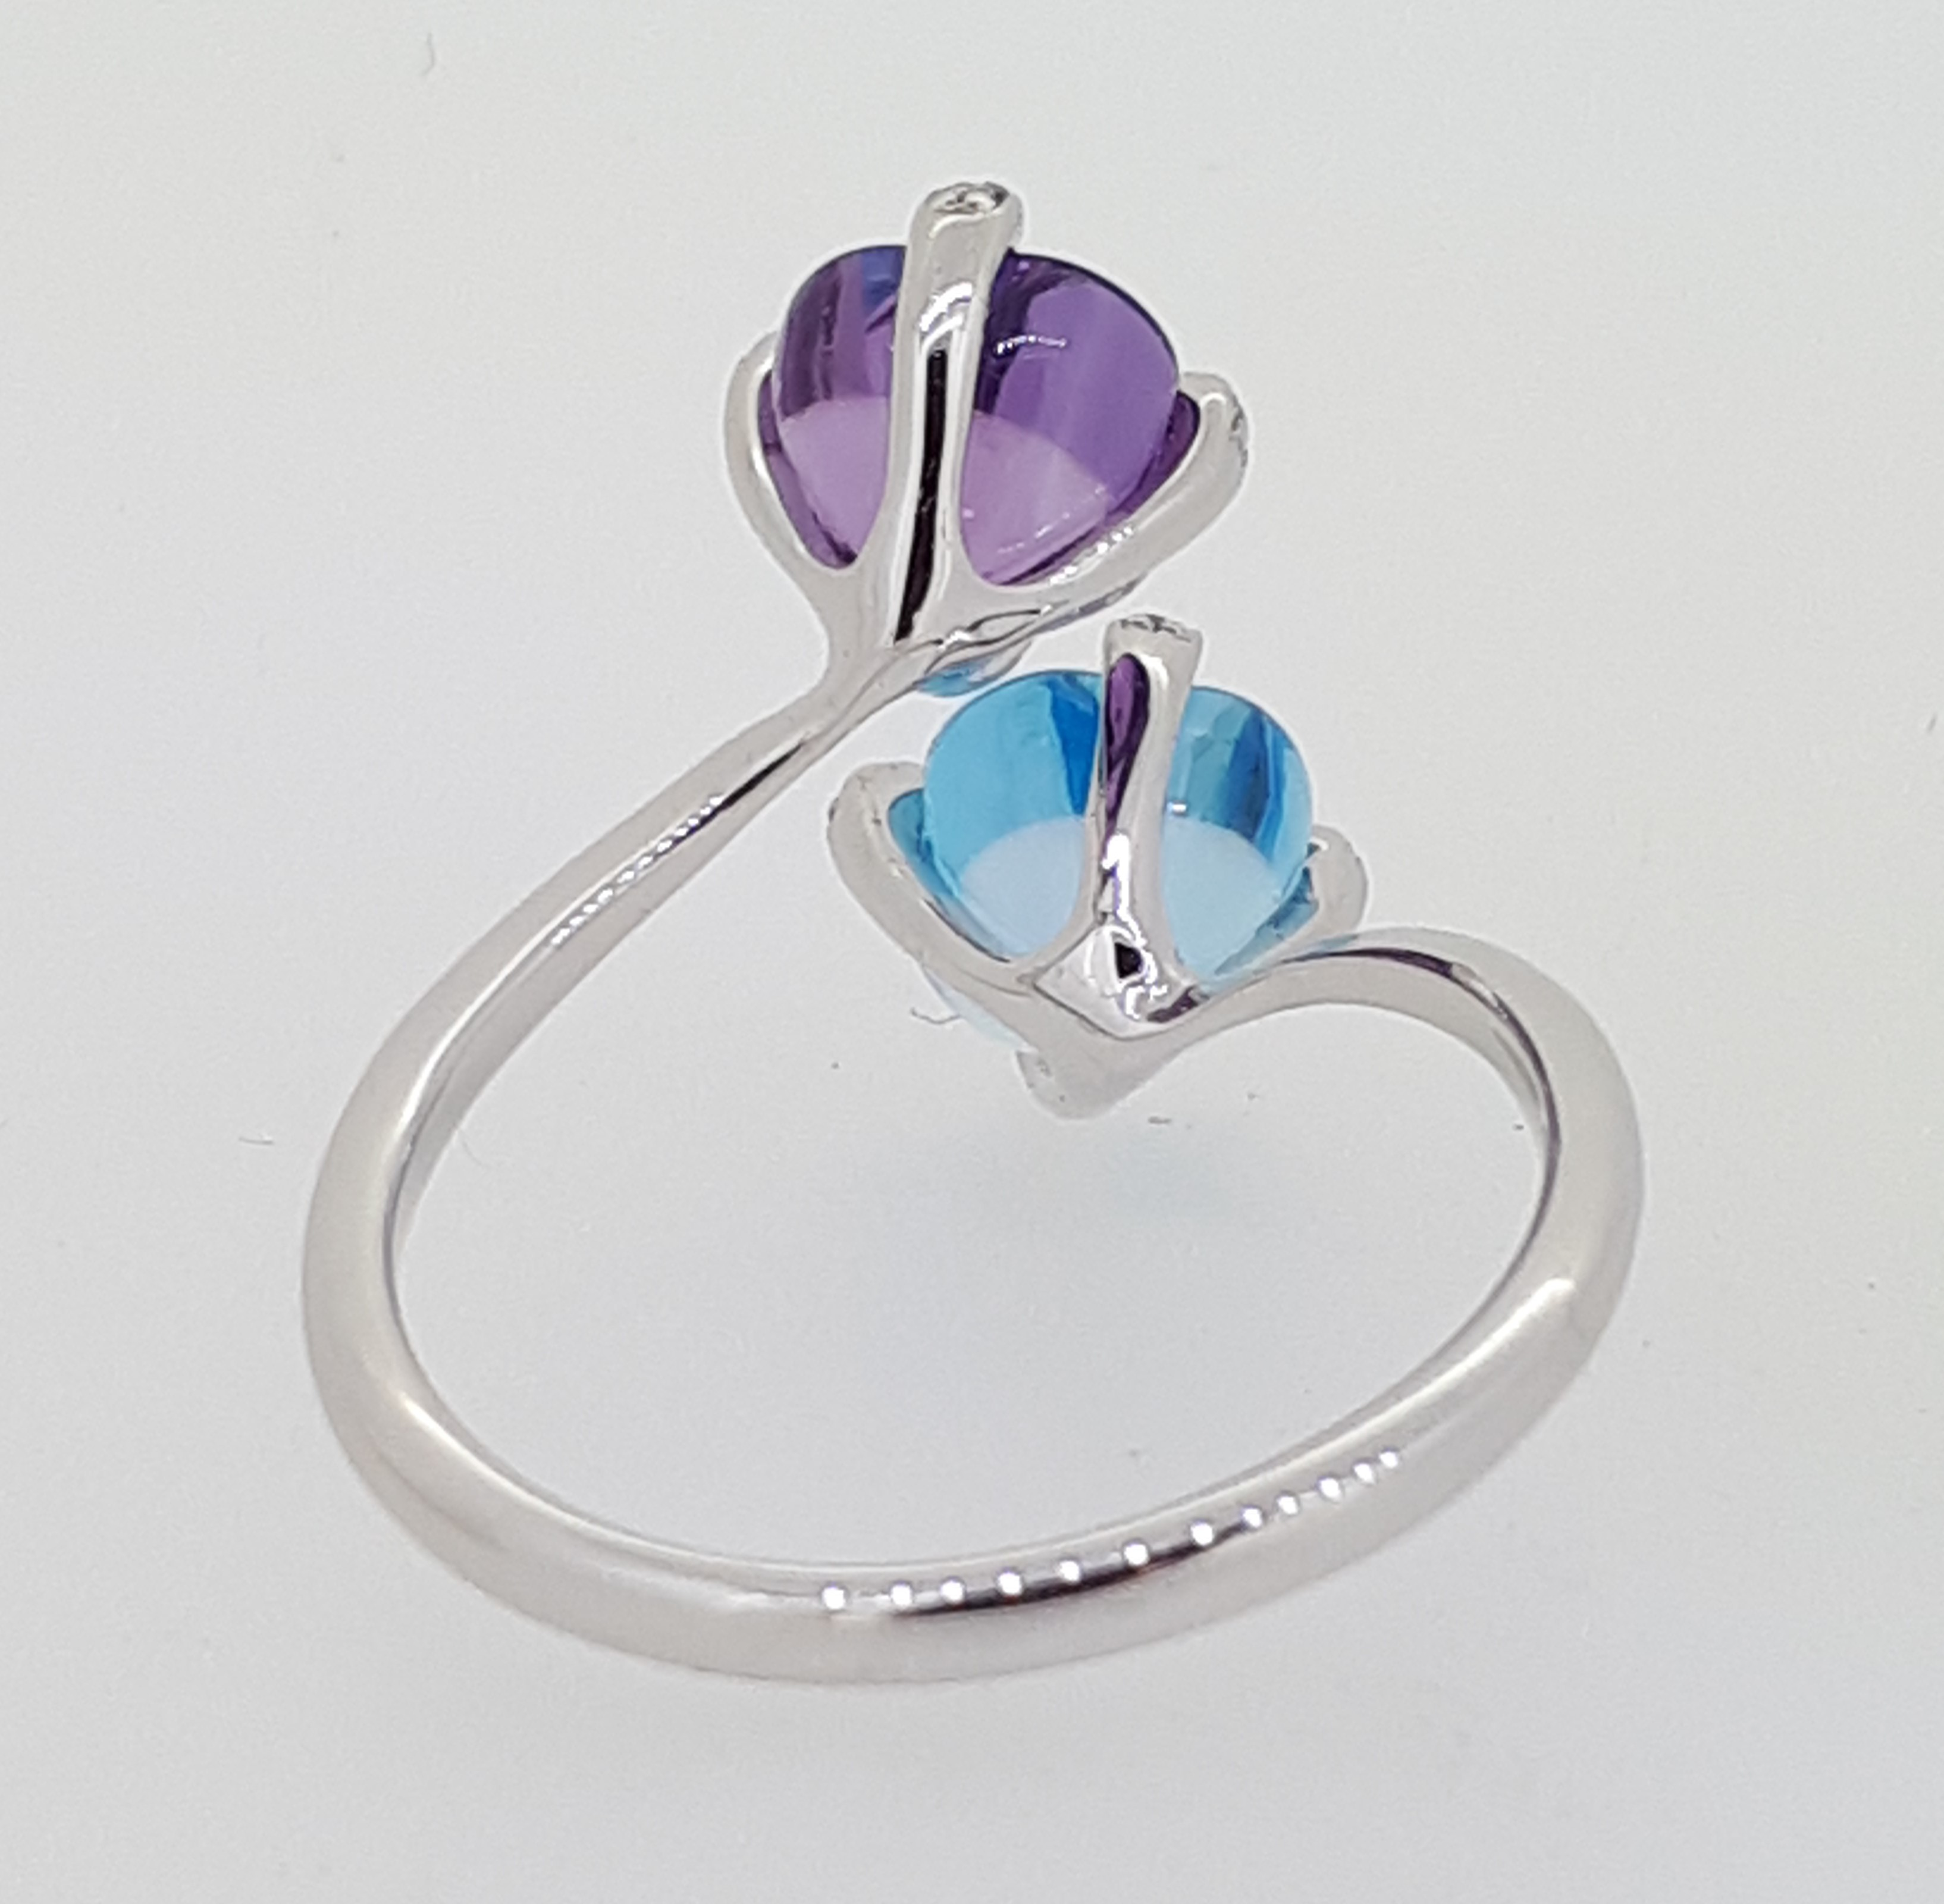 18ct (750) Topaz & Amethyst Crossover Ring with Diamond Claw Setting - Image 3 of 6